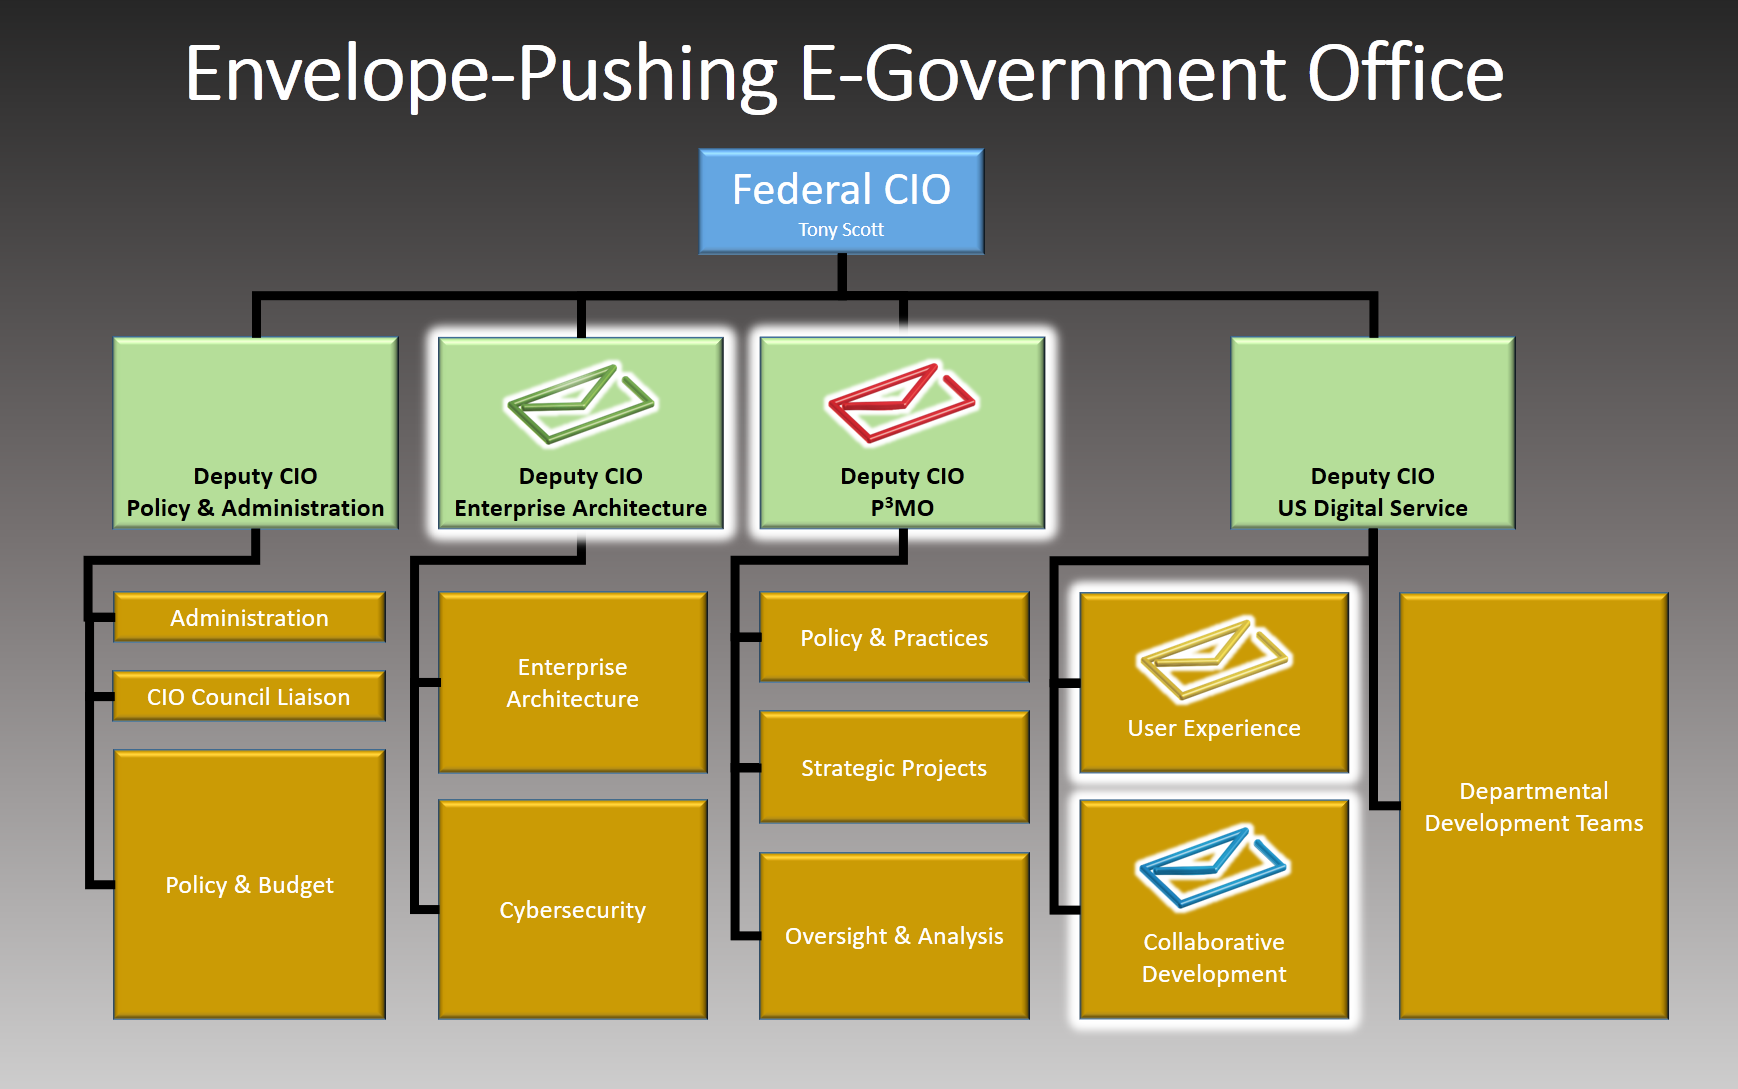 A revised organization chart the for the Office of Management and Budget Office of E-Government & Information Technology.